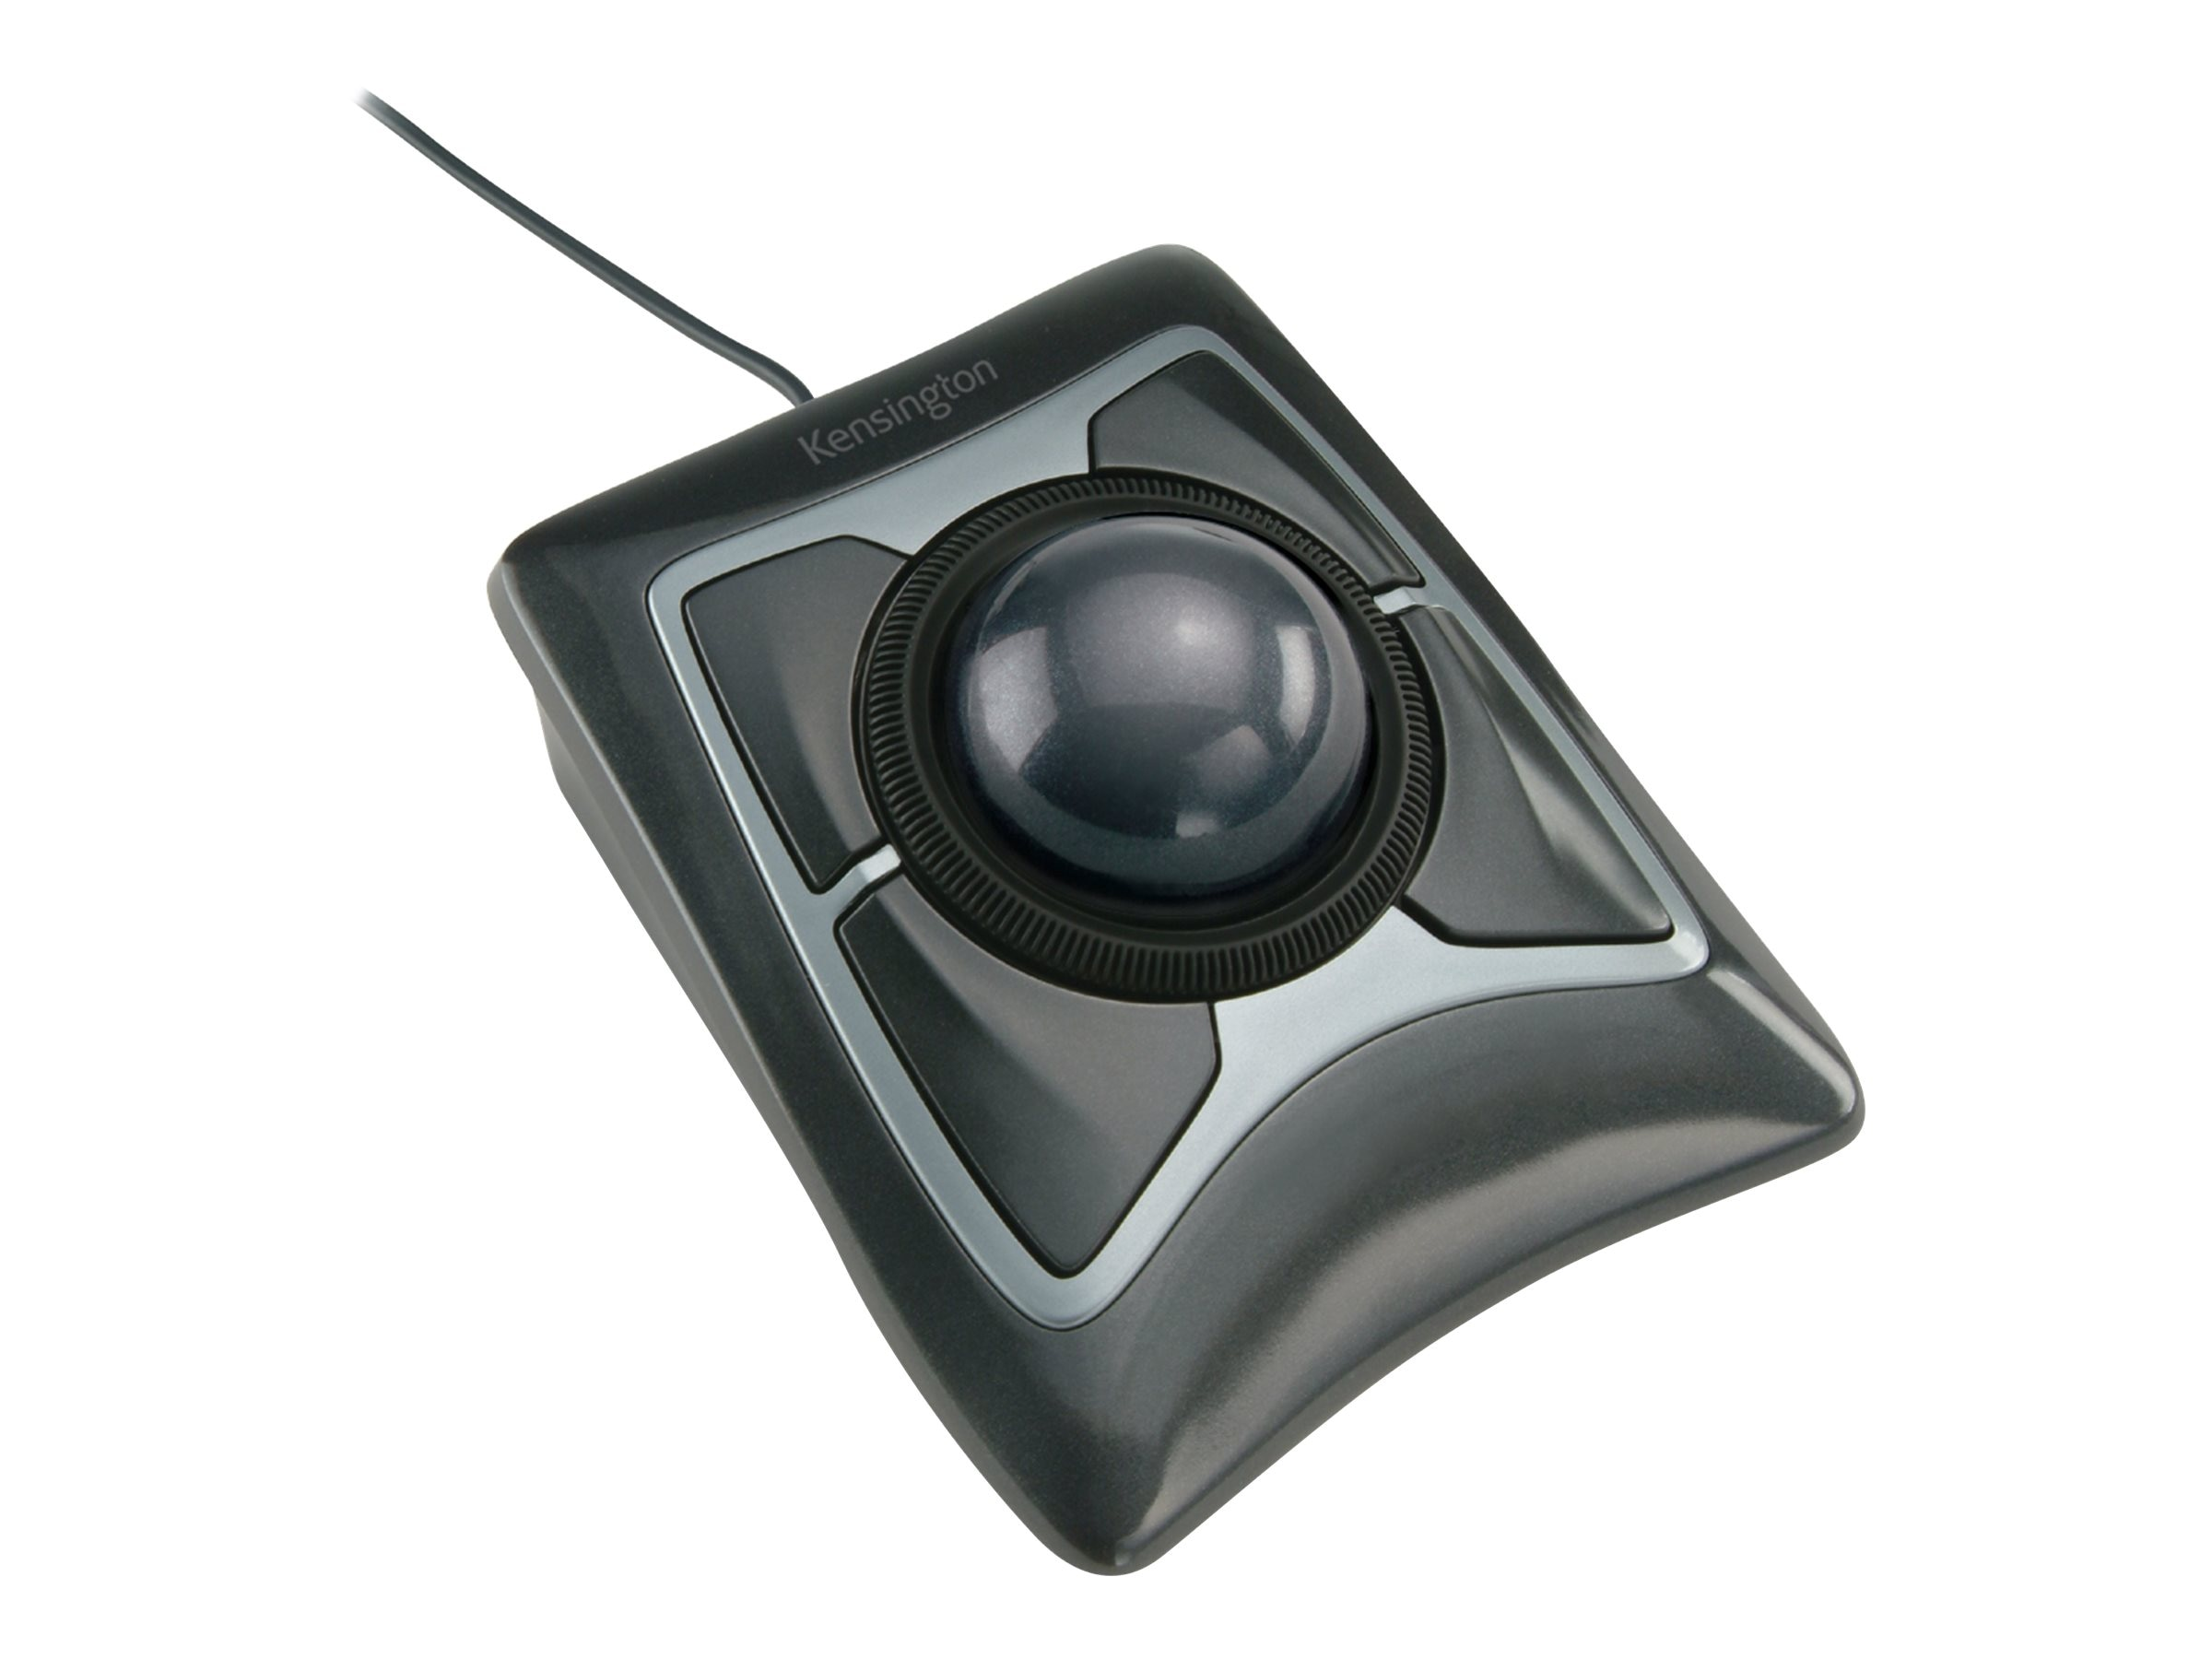 Kensington Expert Mouse Optical Trackball, 64325